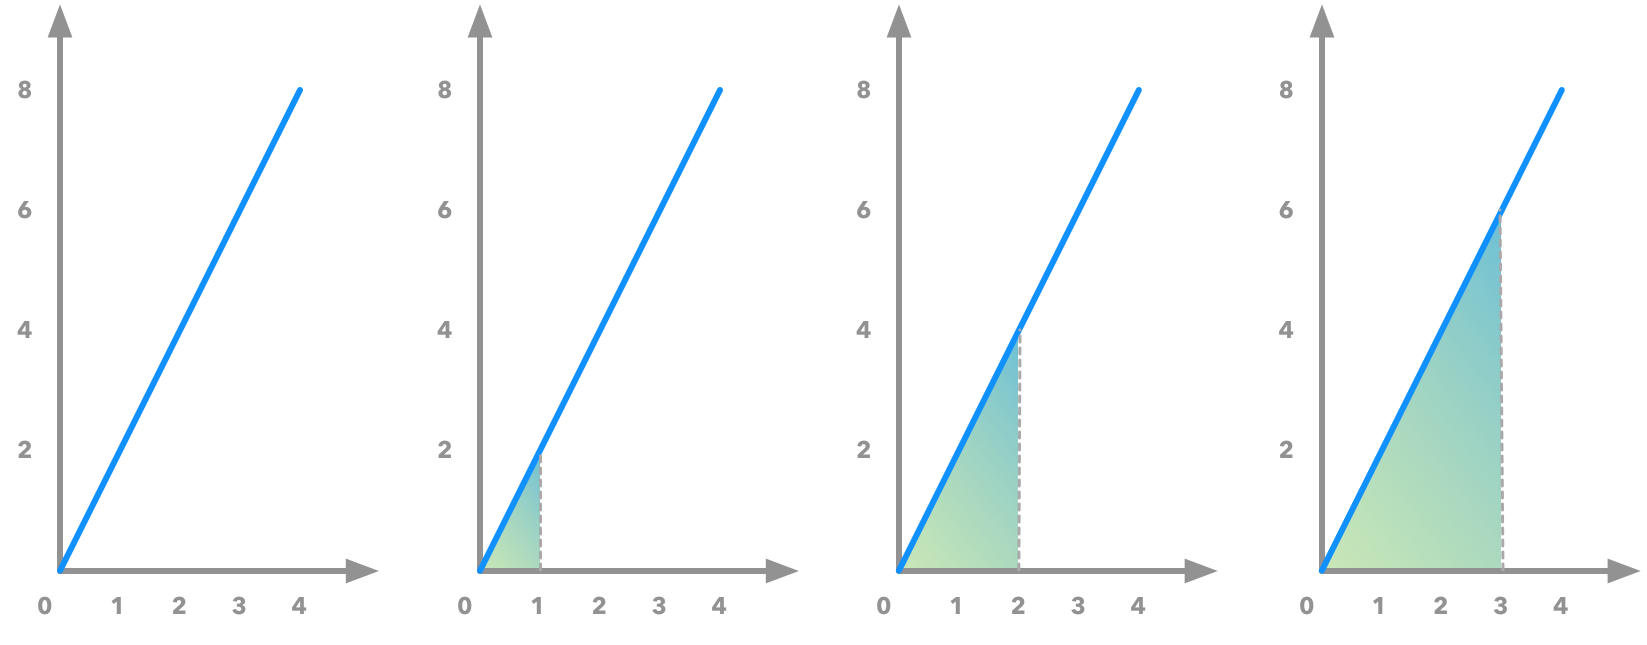 Illustration of the area under the curve of the derivative: it corresponds to the original function